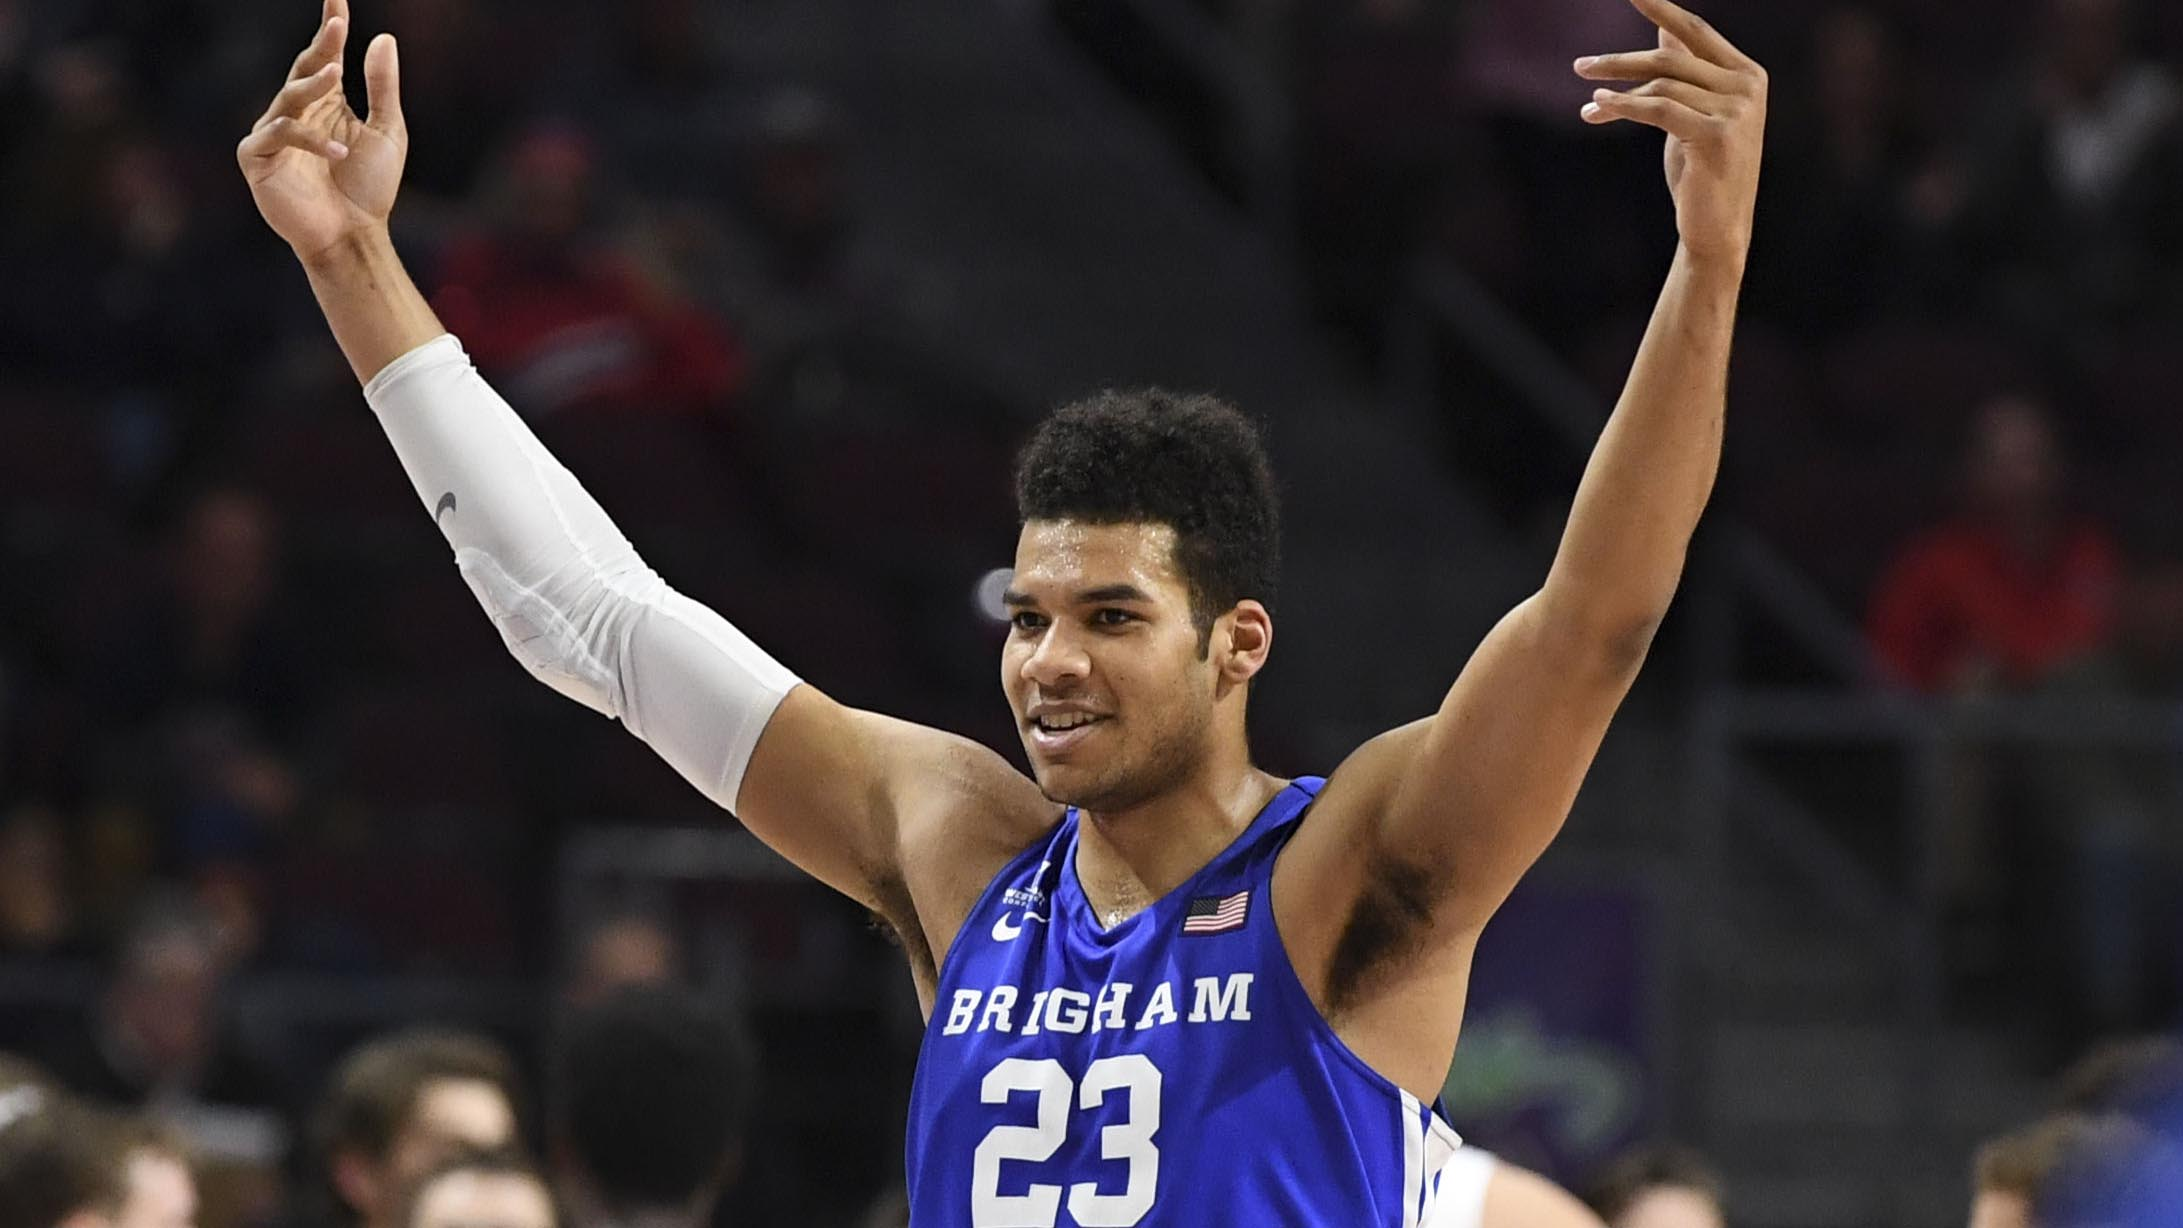 BYU's Yoeli Childs pumps up the crowd